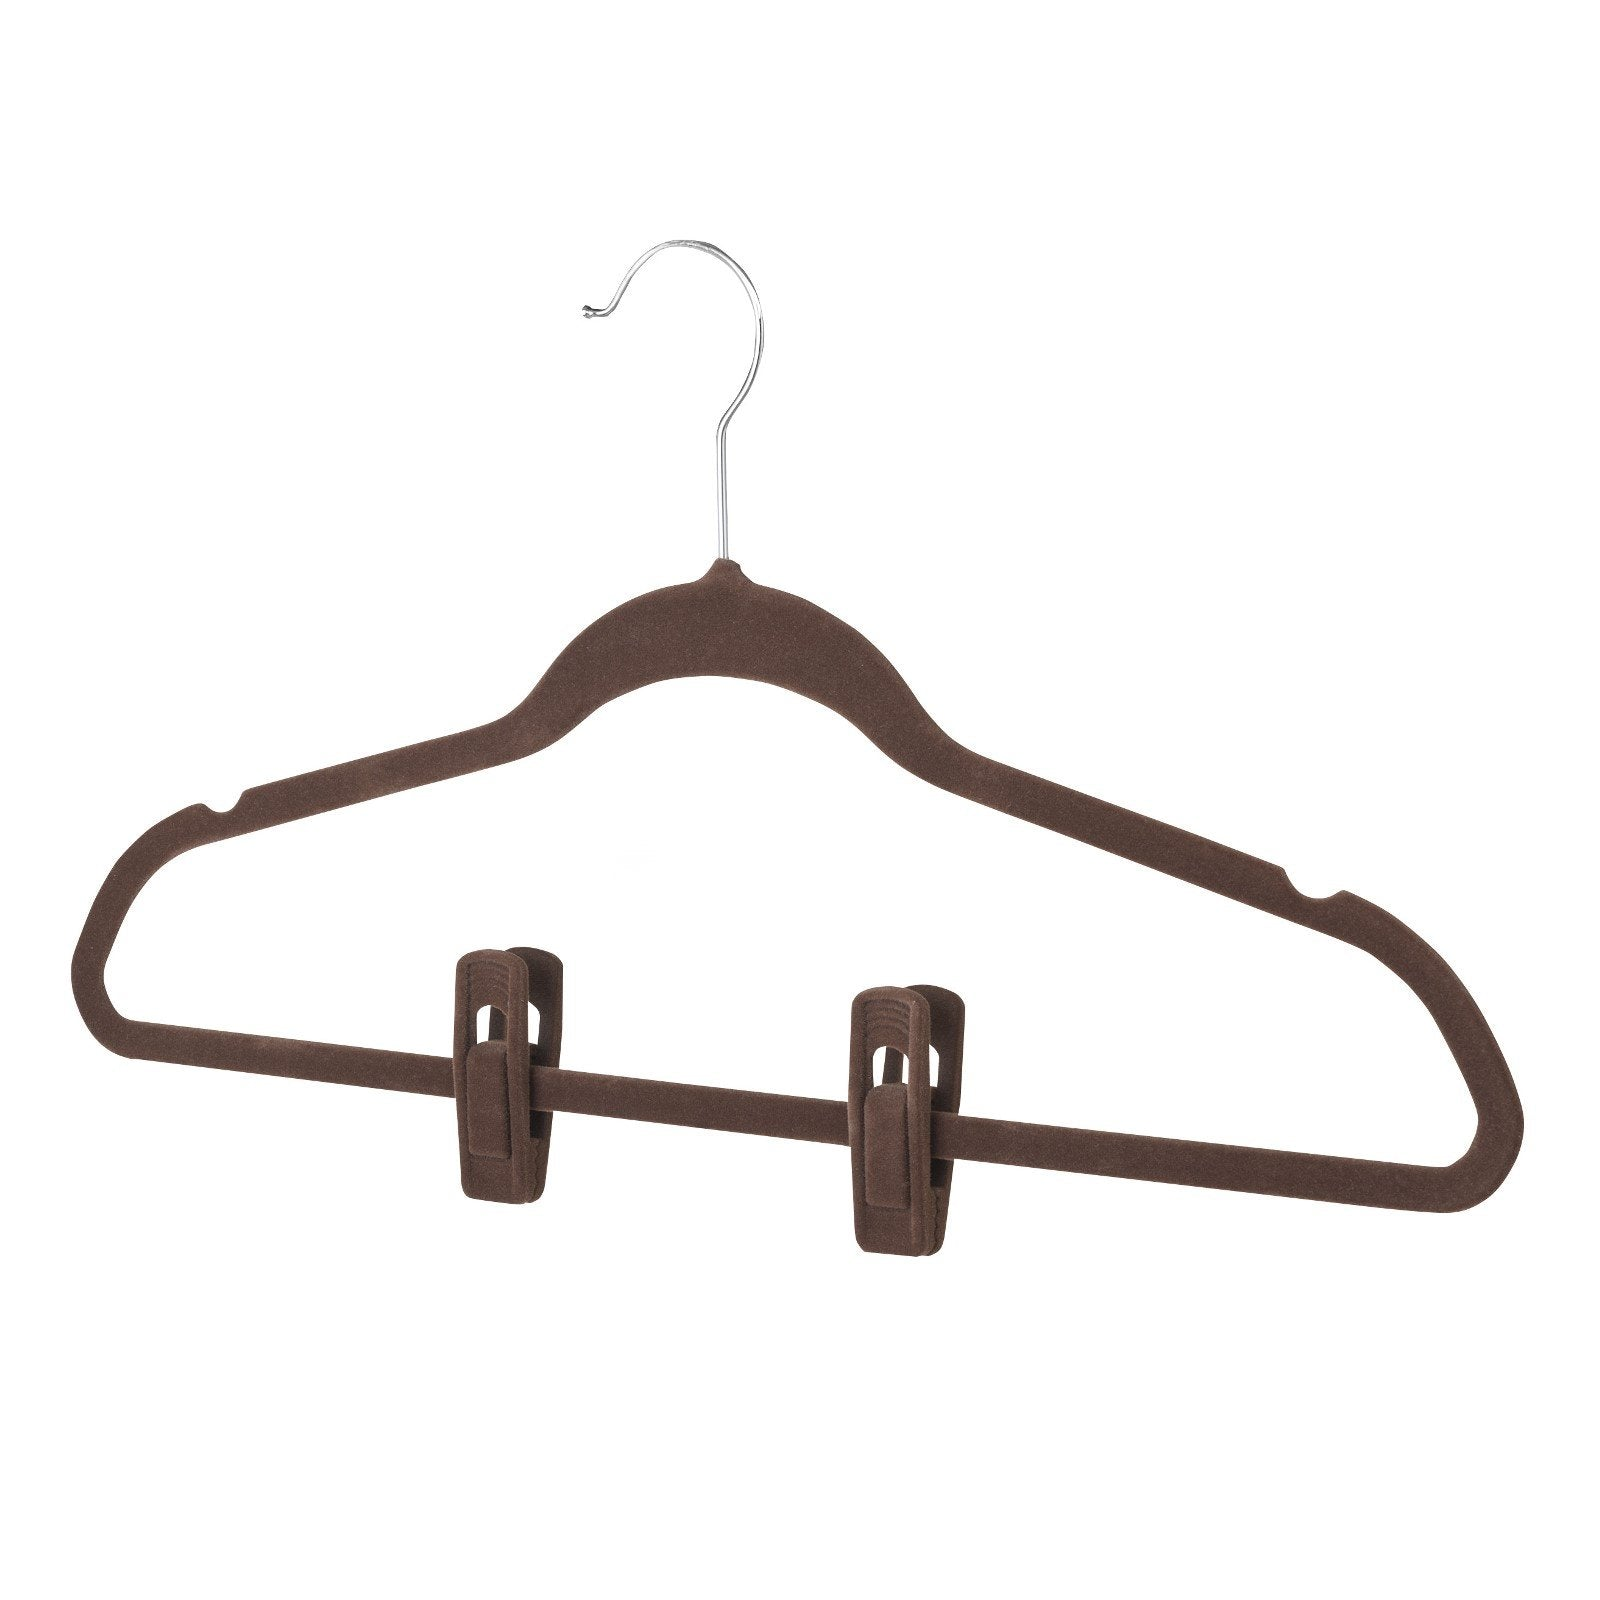 Hanger Clips - Set of 12 - Chocolate - Hang It Up Special -  75% OFF